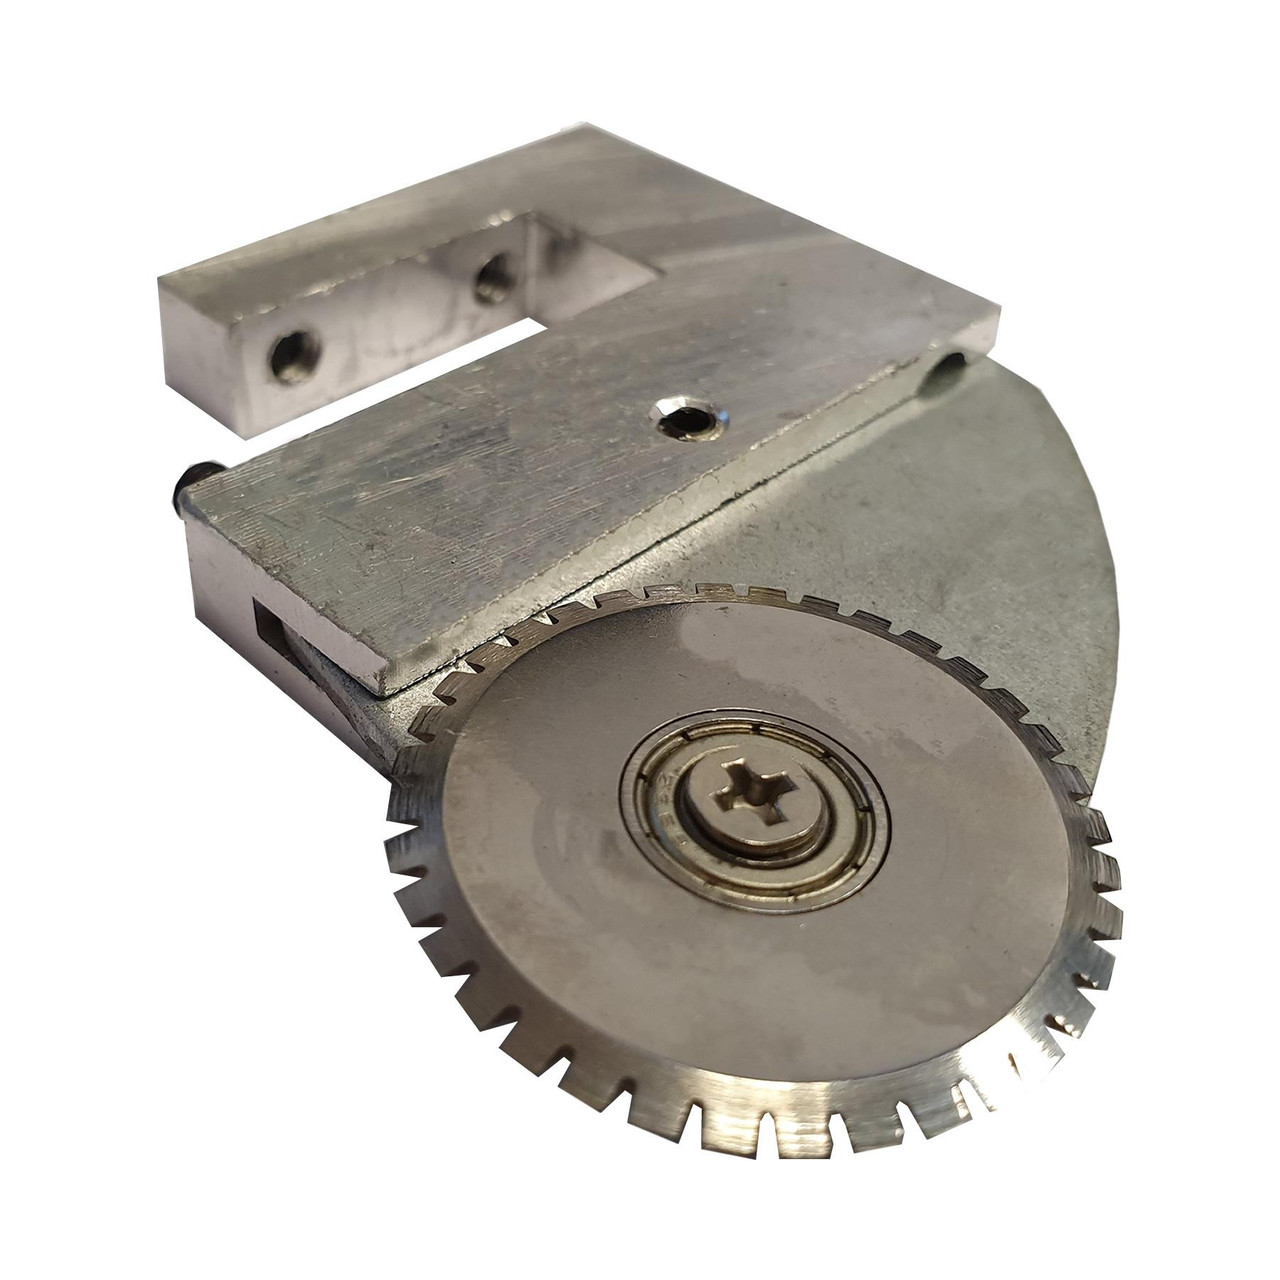 Galaxy Perforation Blade Wheel for Galaxy PAC 400, 450 and 900 Machines